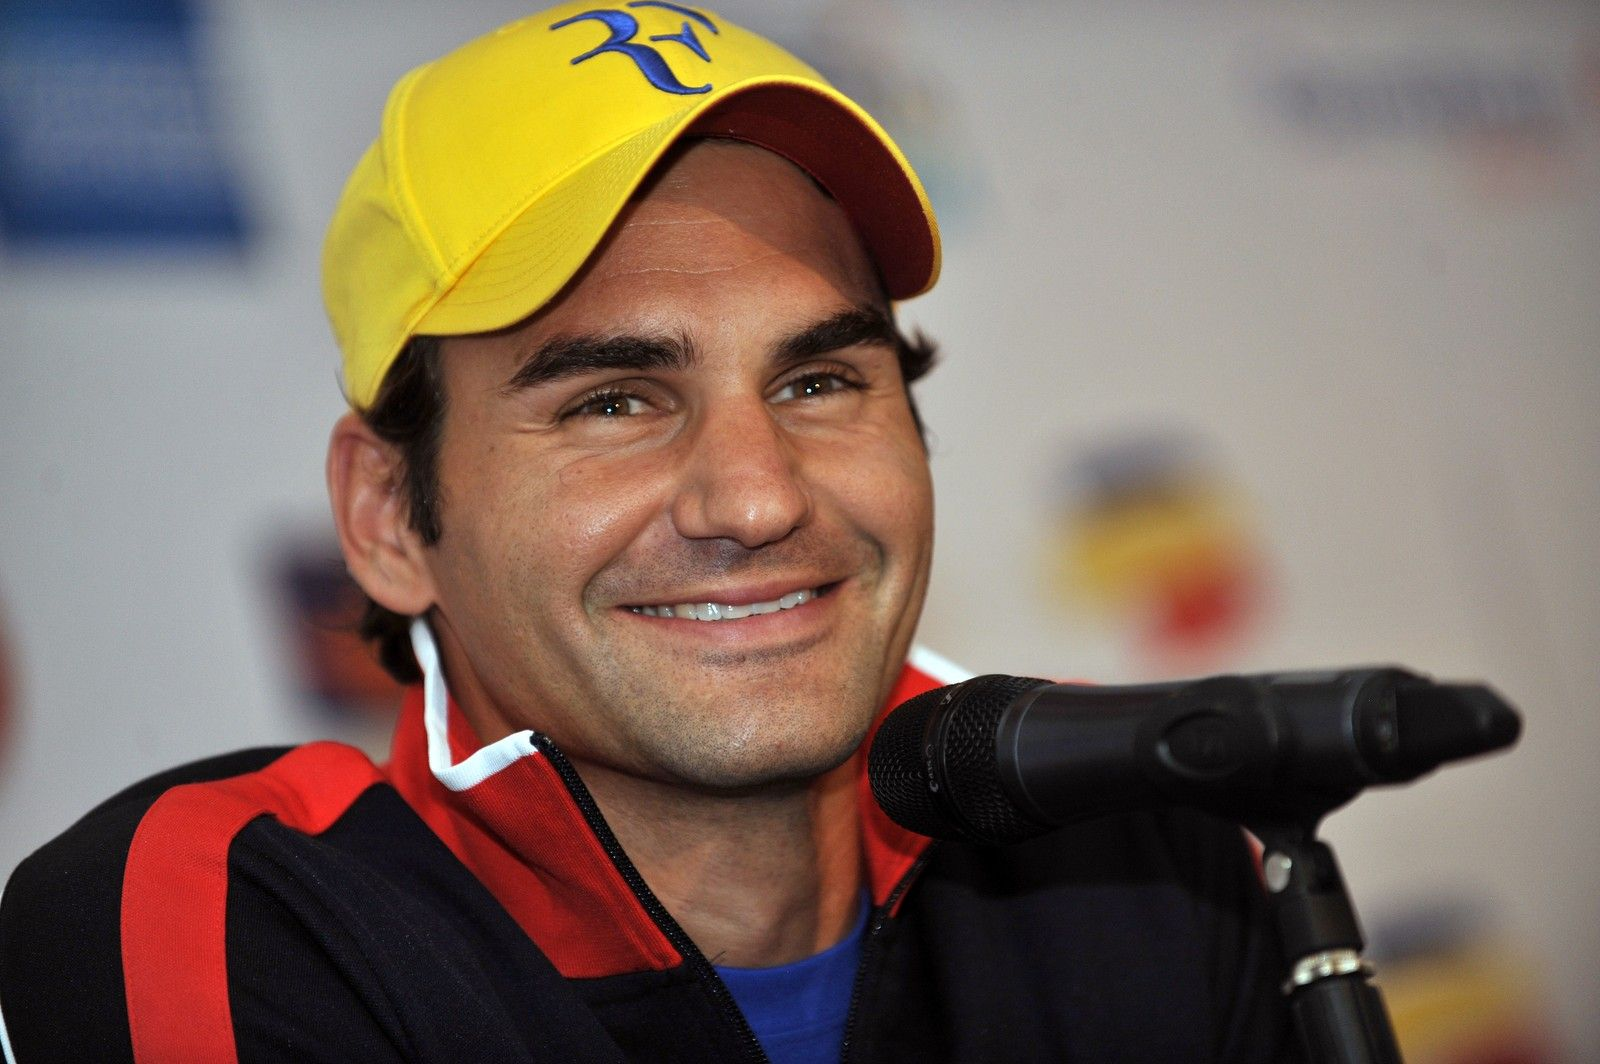 Roger Federer wearing his iconic 'RF' logo cap